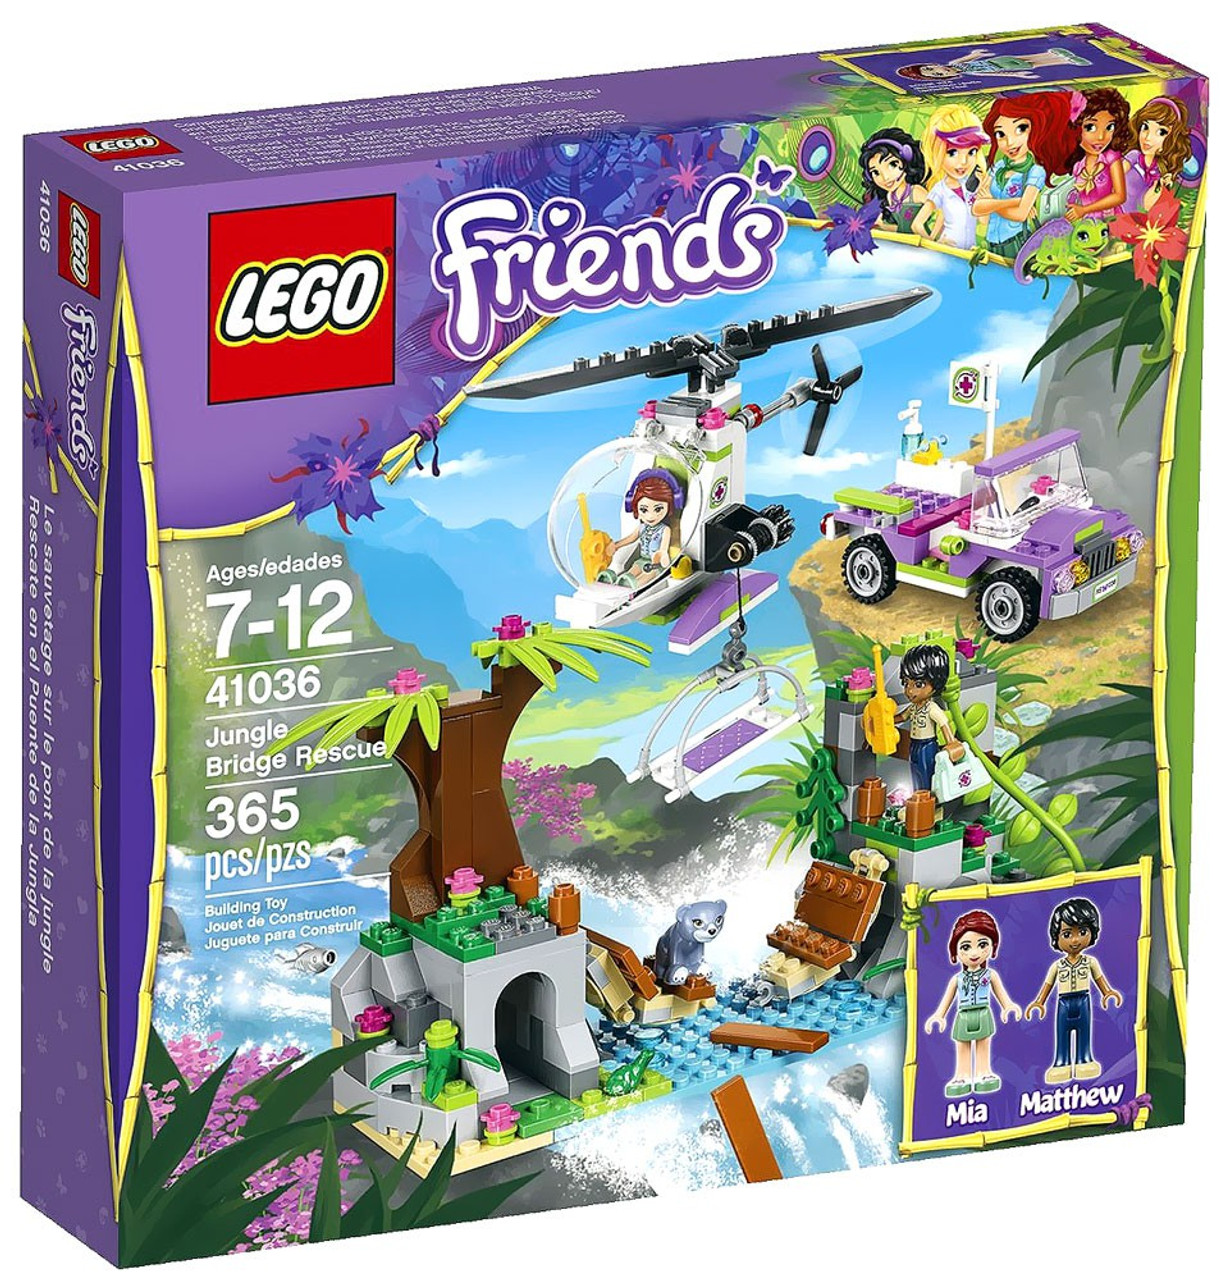 LEGO Friends Jungle Bridge Rescue Set #41036